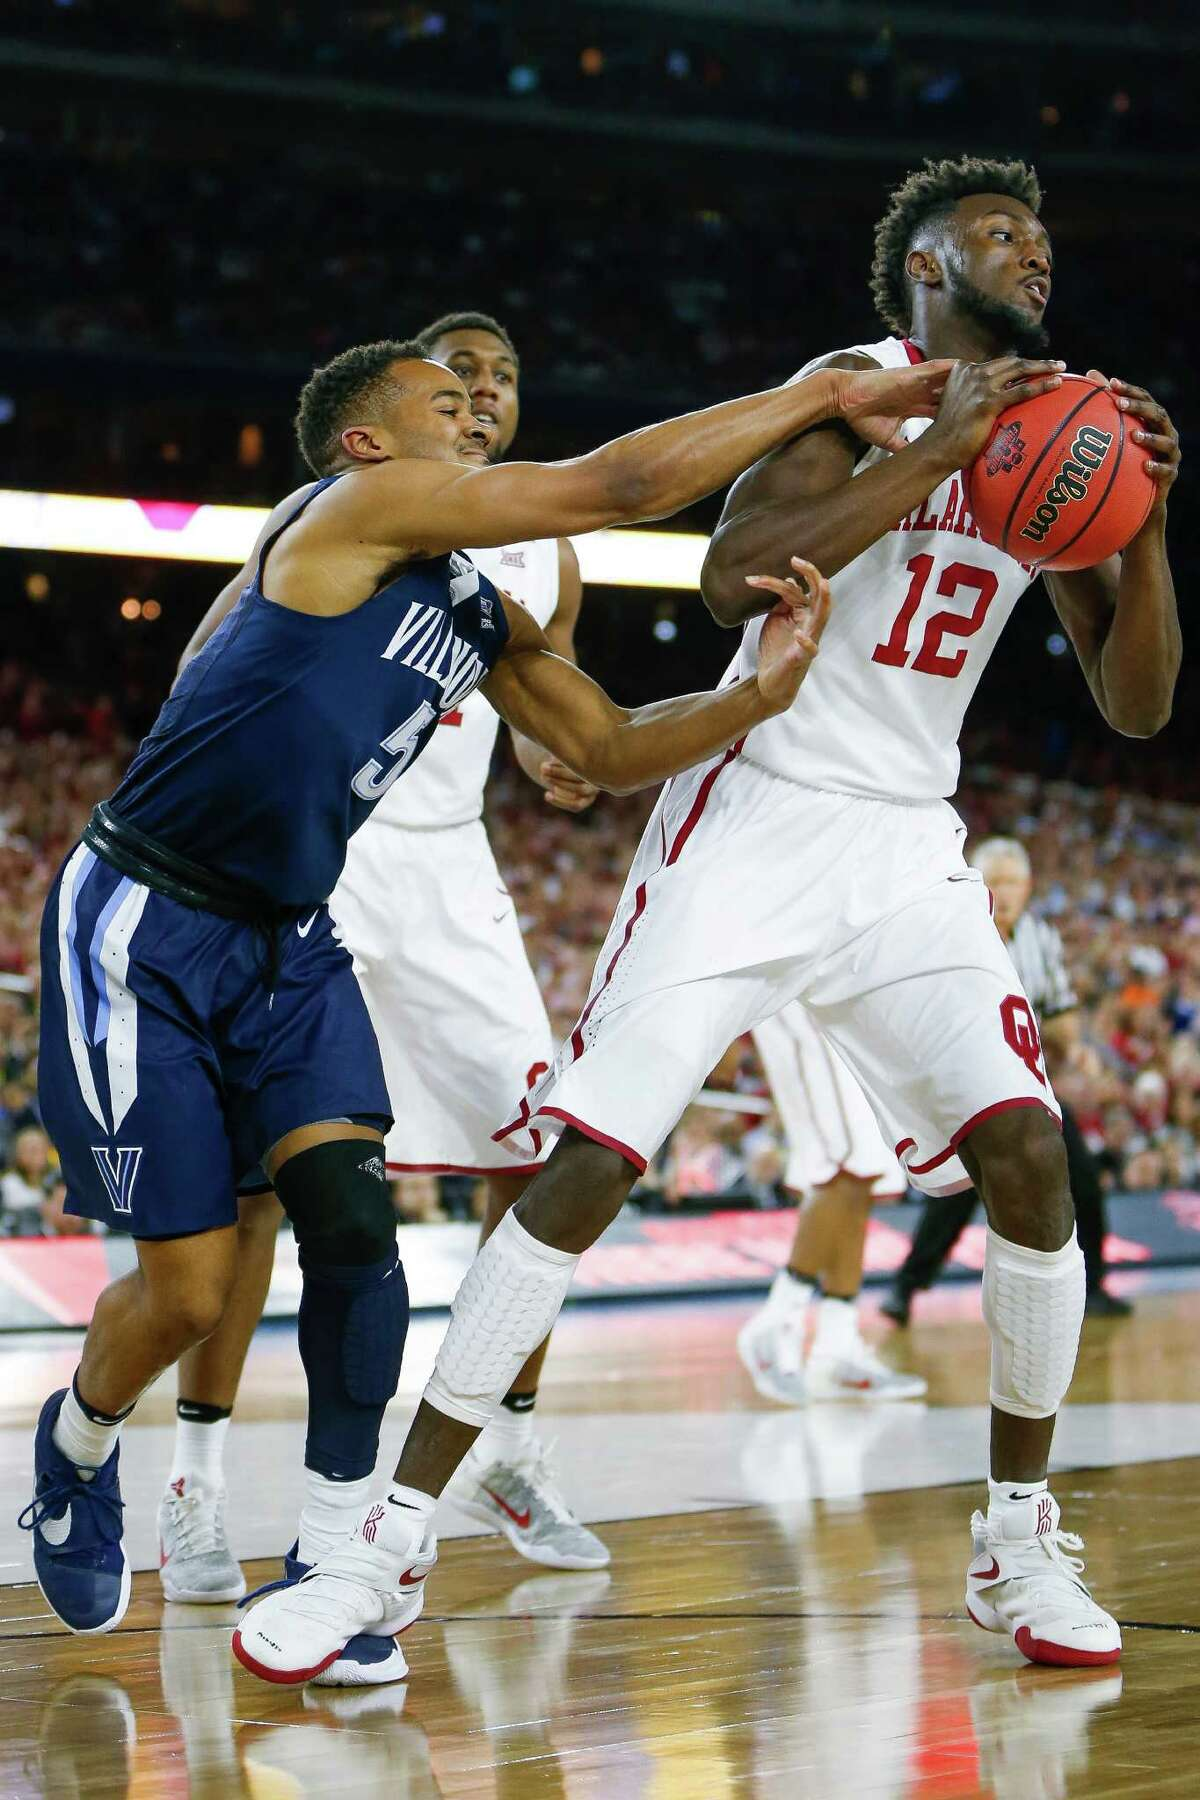 Oklahoma forward Khadeem Lattin (12) attempts to rip the ball away from Villanova guard Phil Booth (5) during the NCAA Final Four semifinals at NRG Stadium, Saturday, April 2, 2016, in Houston.